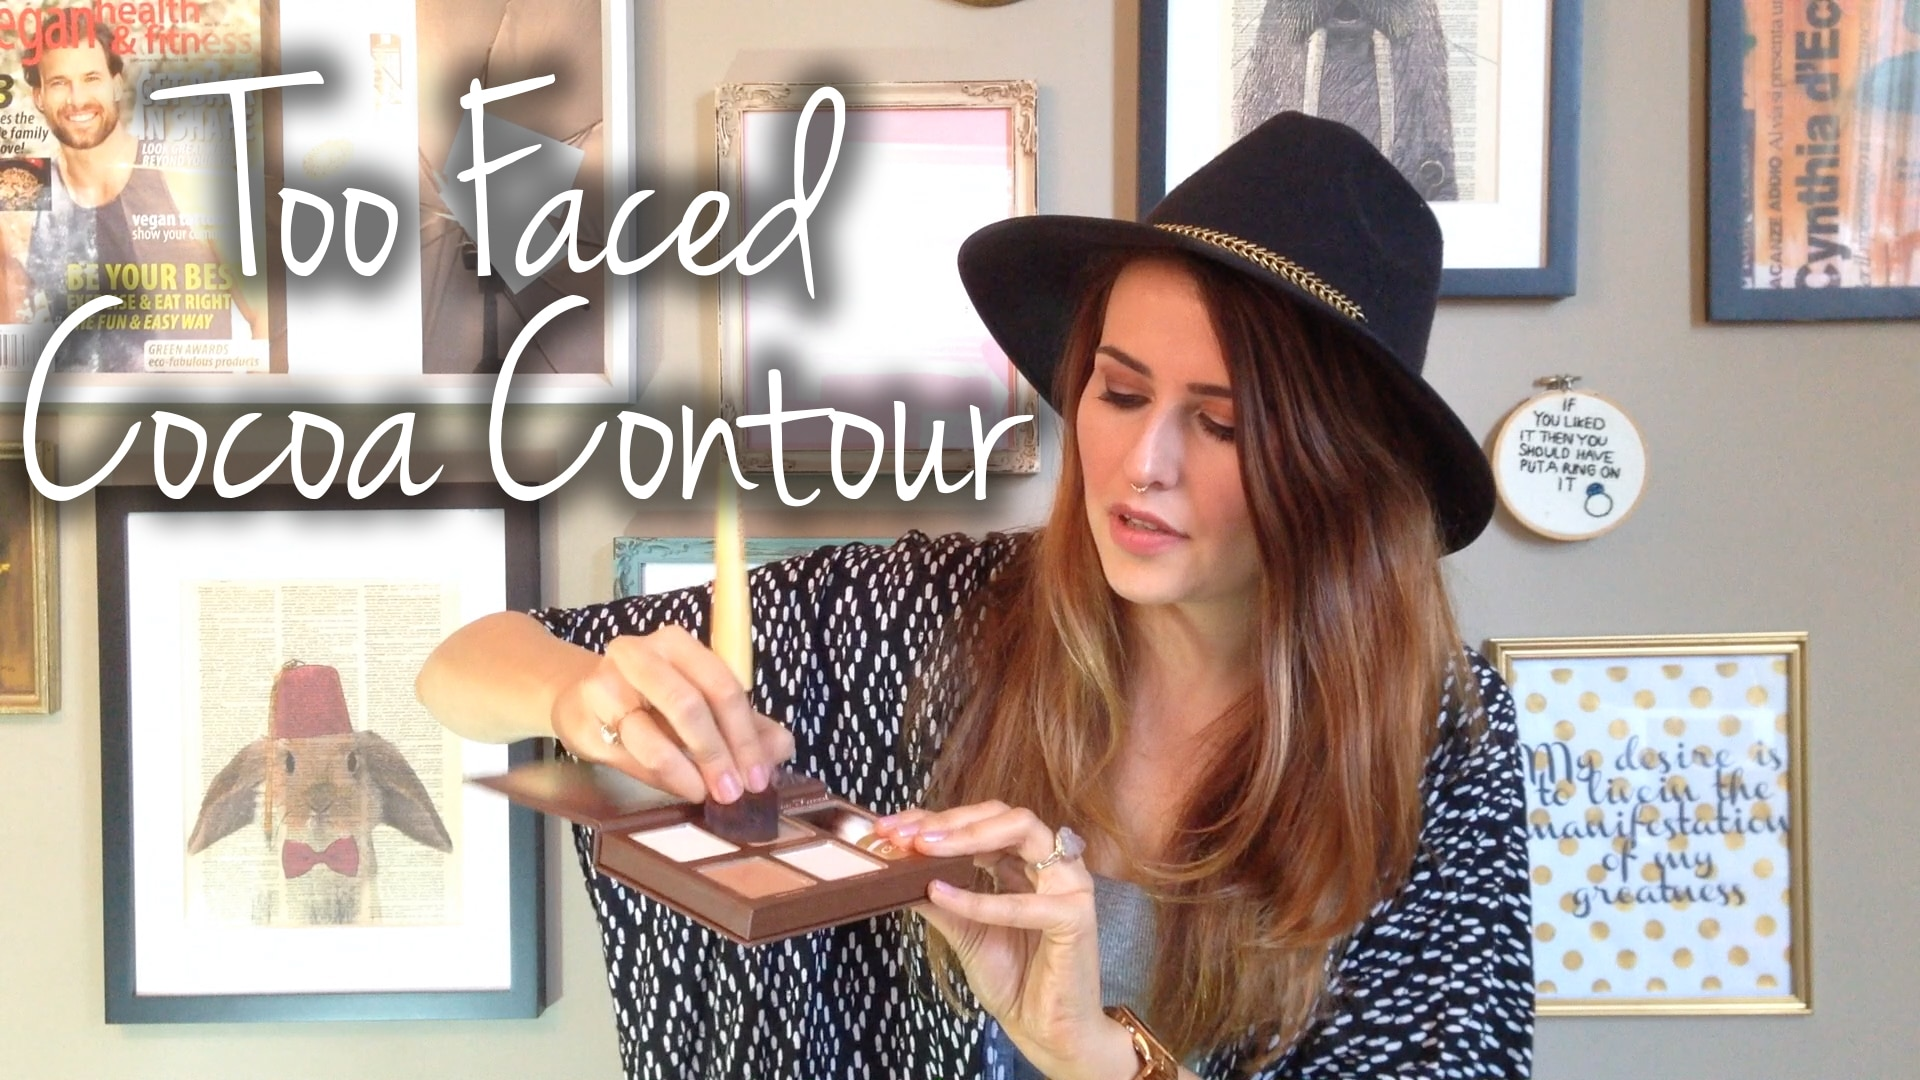 Too Faced Cocoa Contour Palette First Impressions & Swatches Video